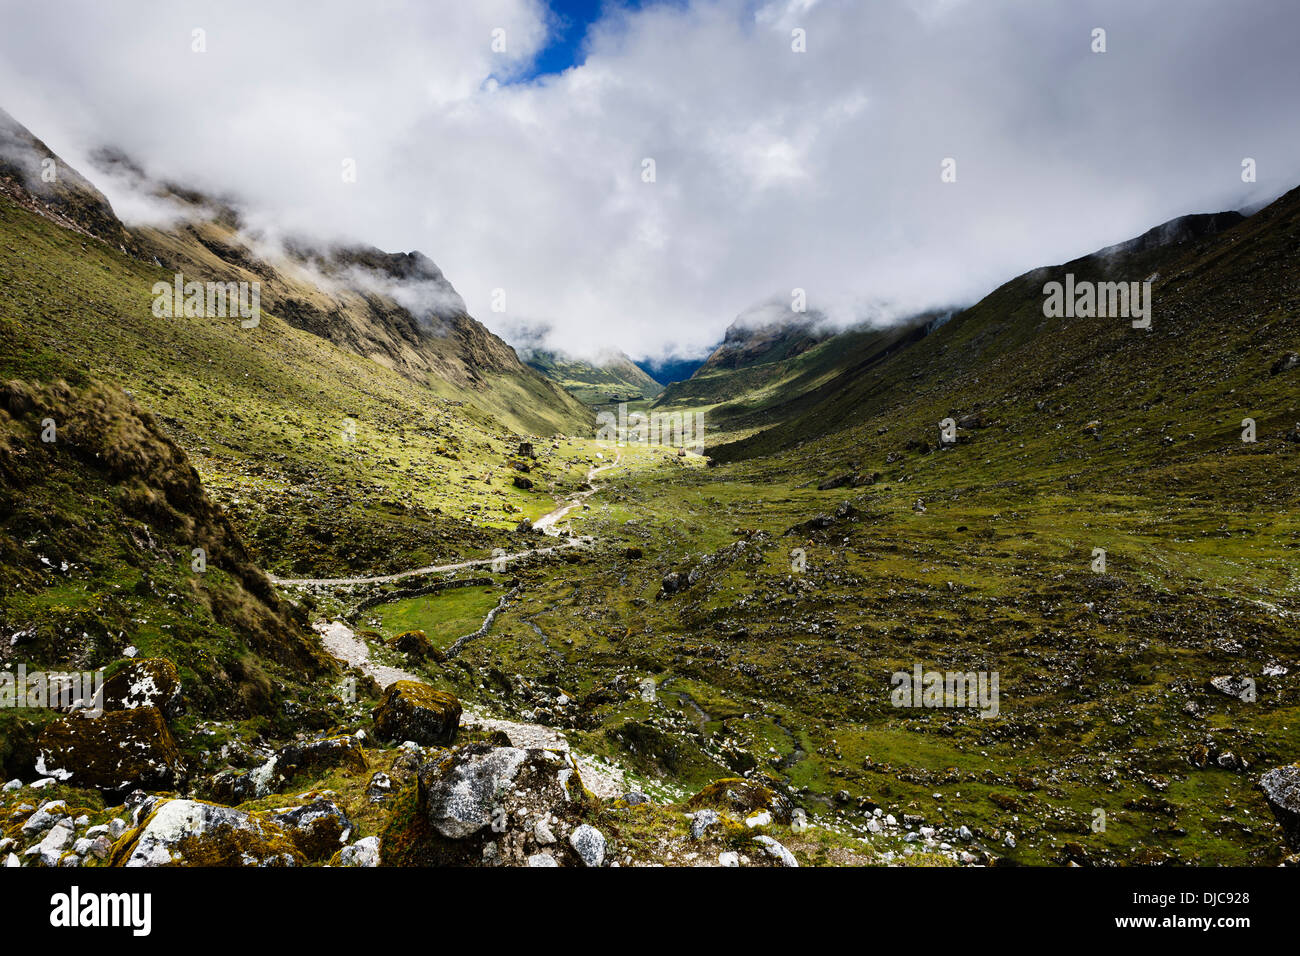 Scenery from along the route of the Salkantay Trek in the Cuzco Region of Peru. - Stock Image